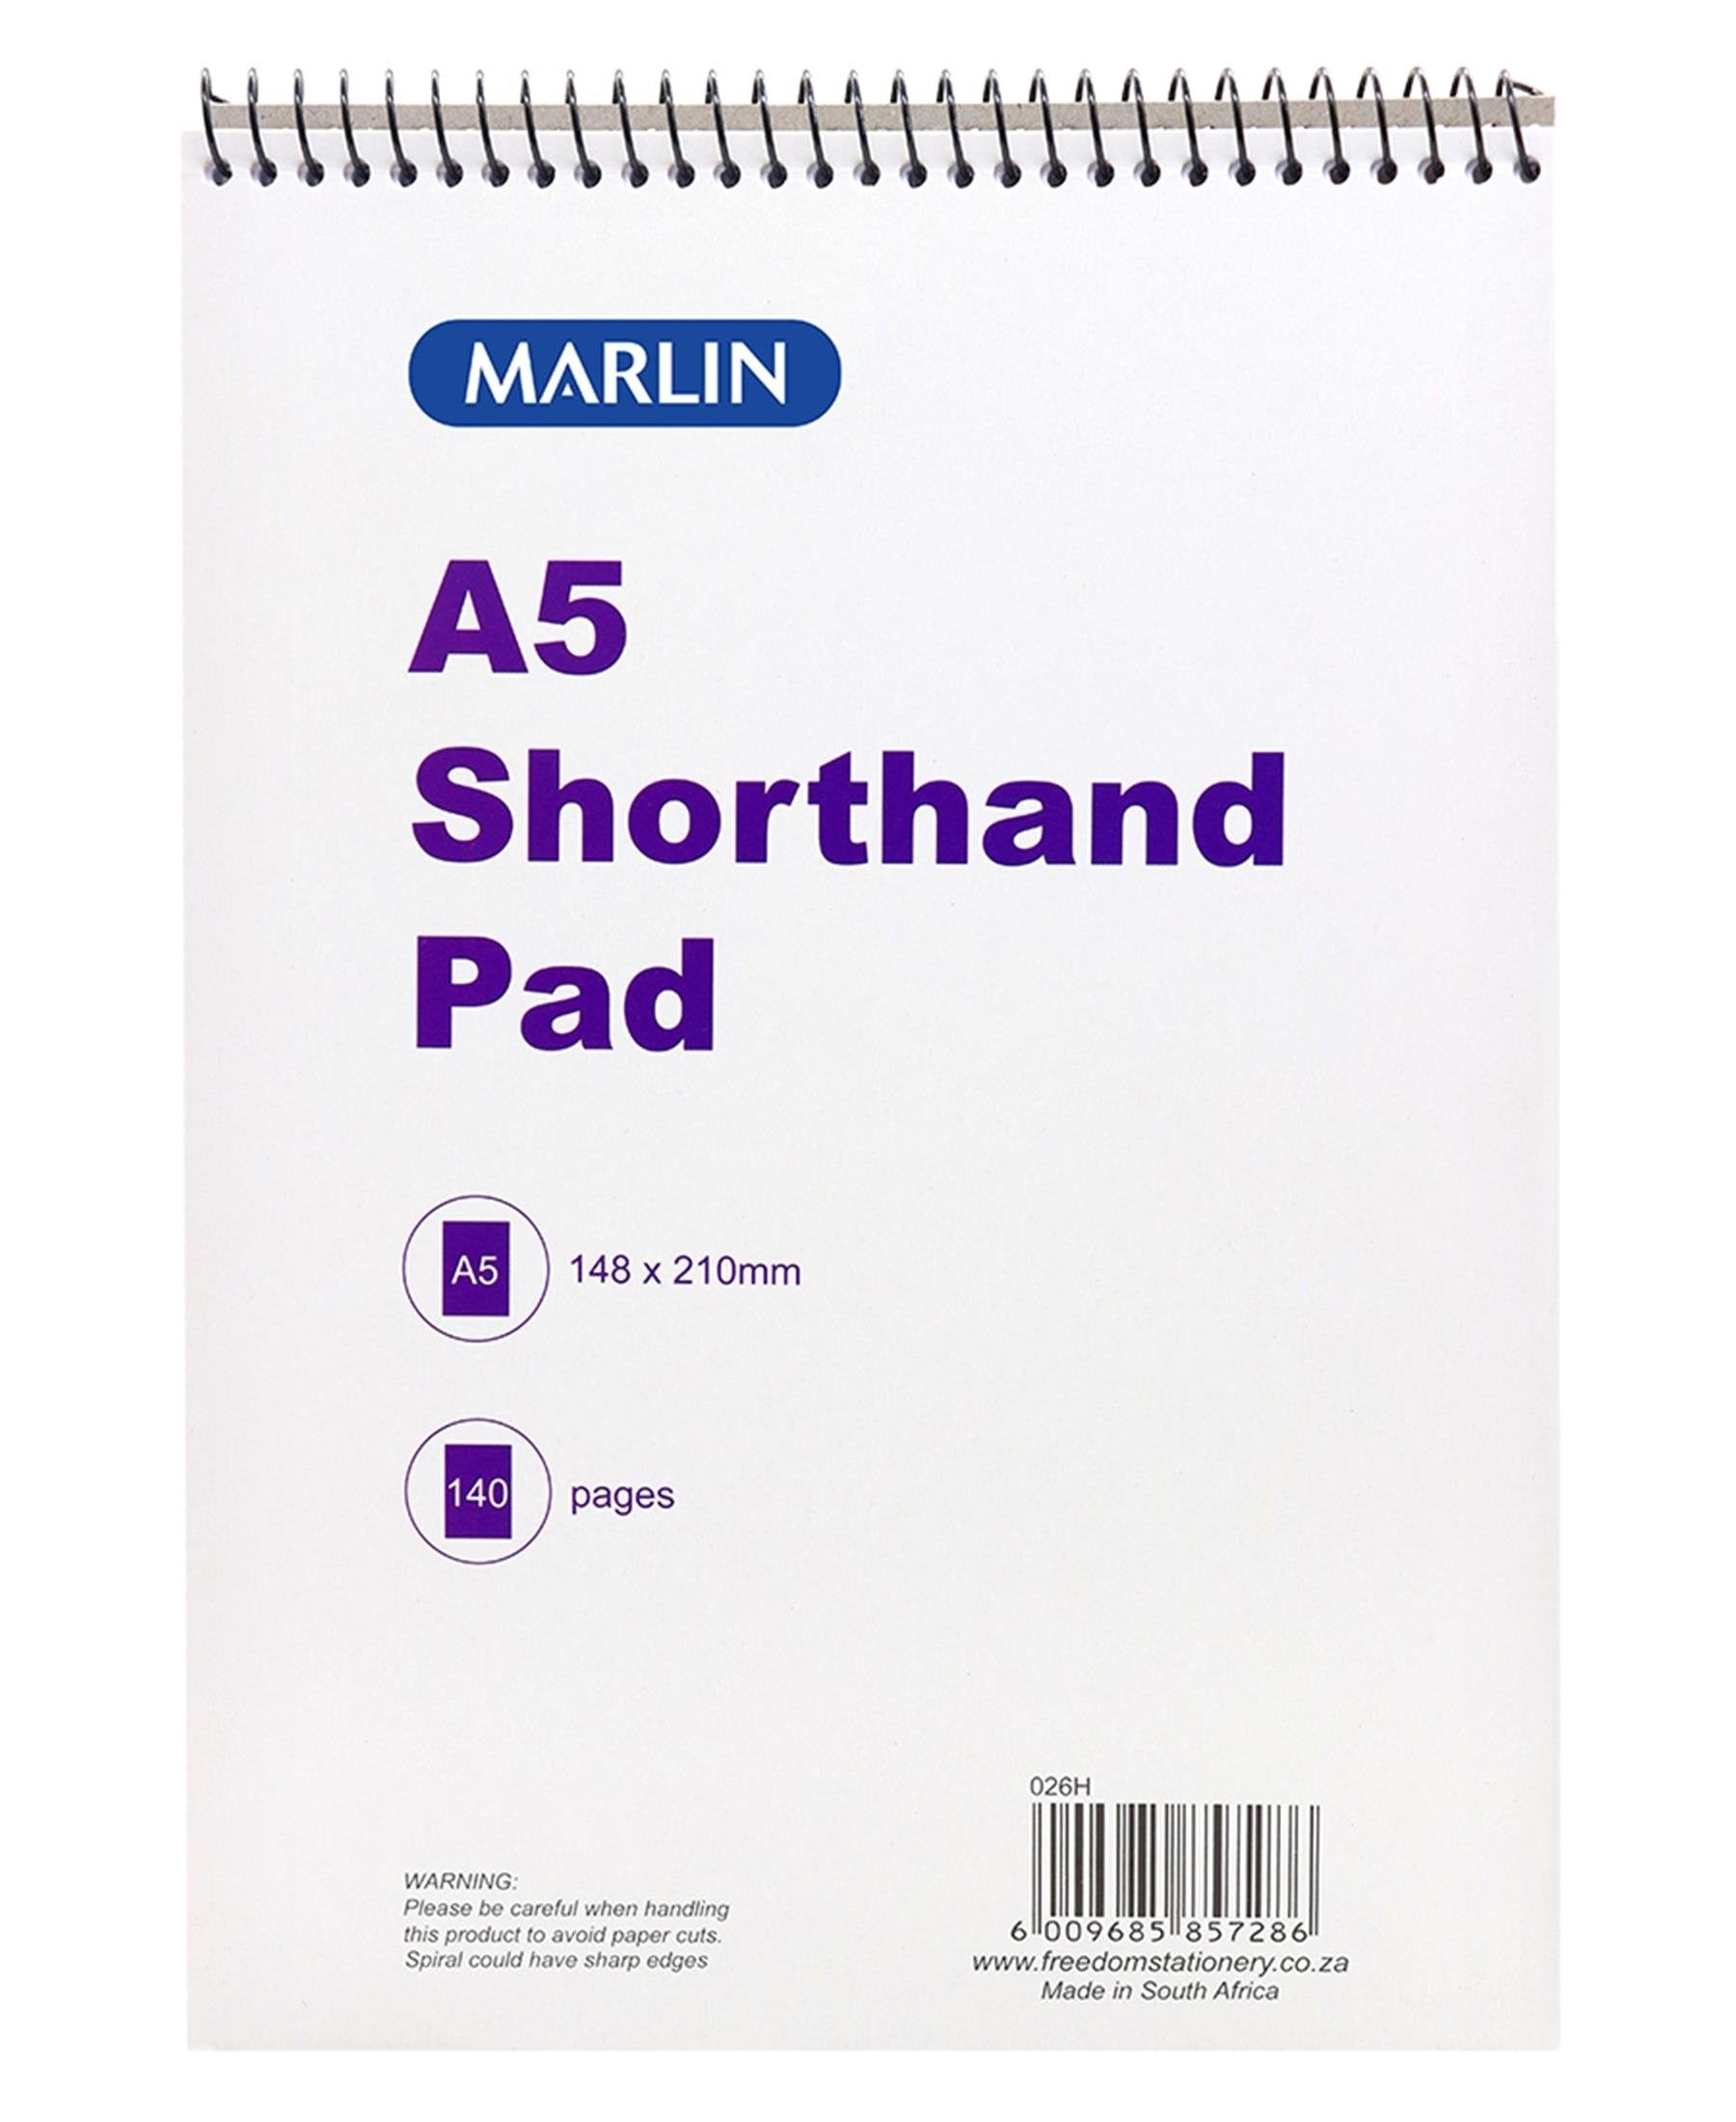 Marlin140 Pages Top Spiral A5 Shorthand Pad - White